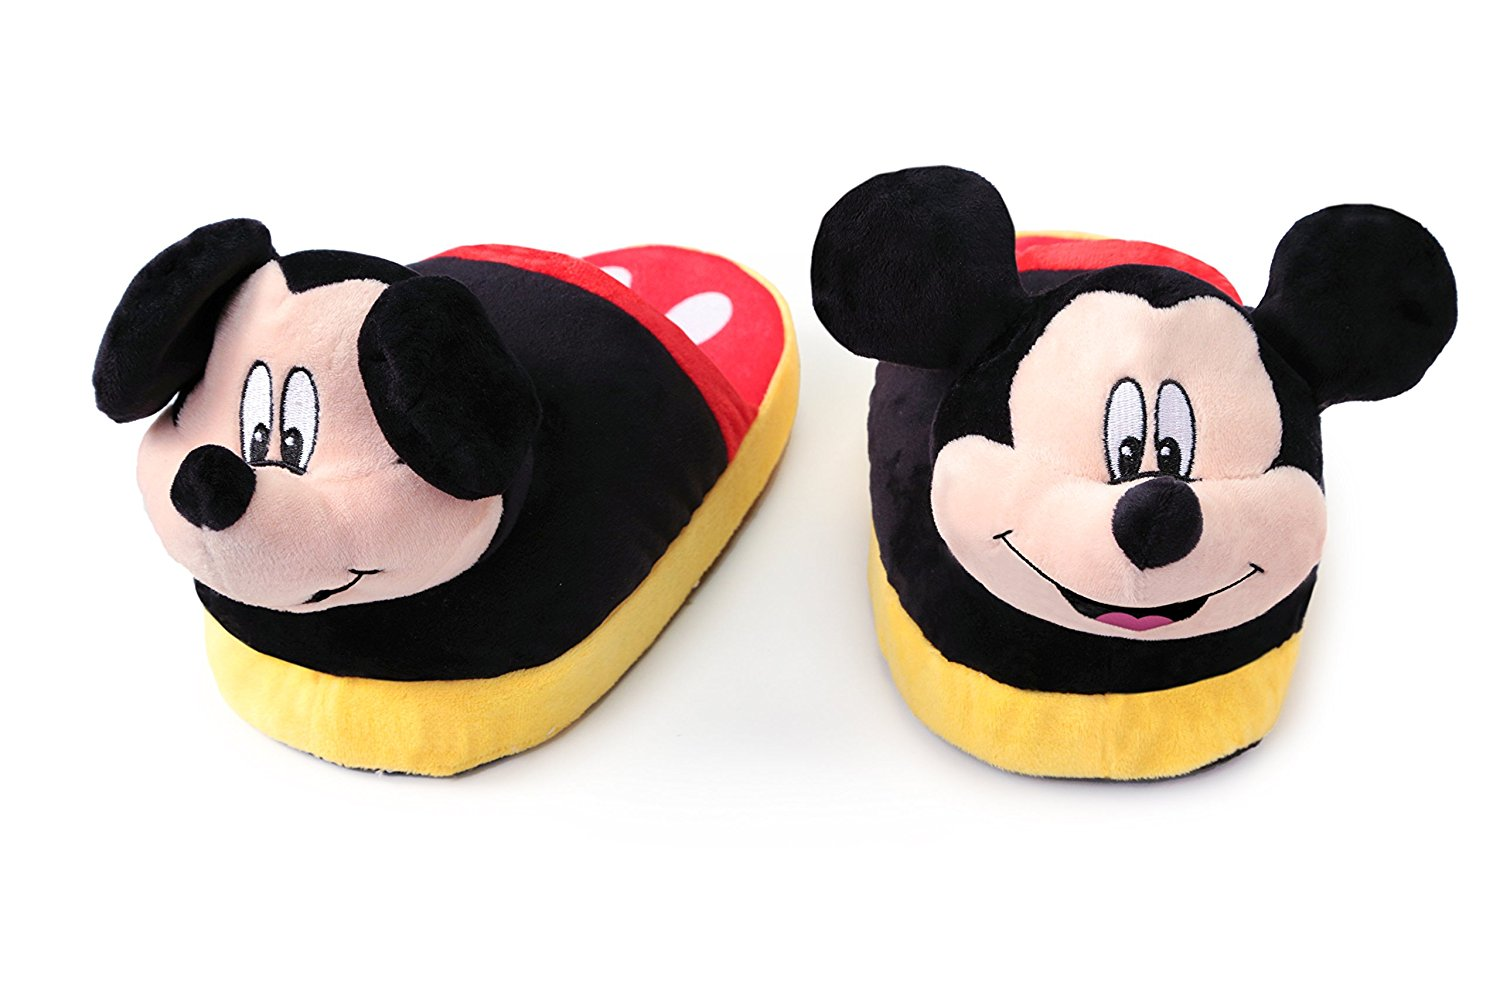 a91d60fc476 Get Quotations · Stompeez Animated Mickey Mouse Plush Slippers - Ultra Soft  and Fuzzy - Ears Flap as You